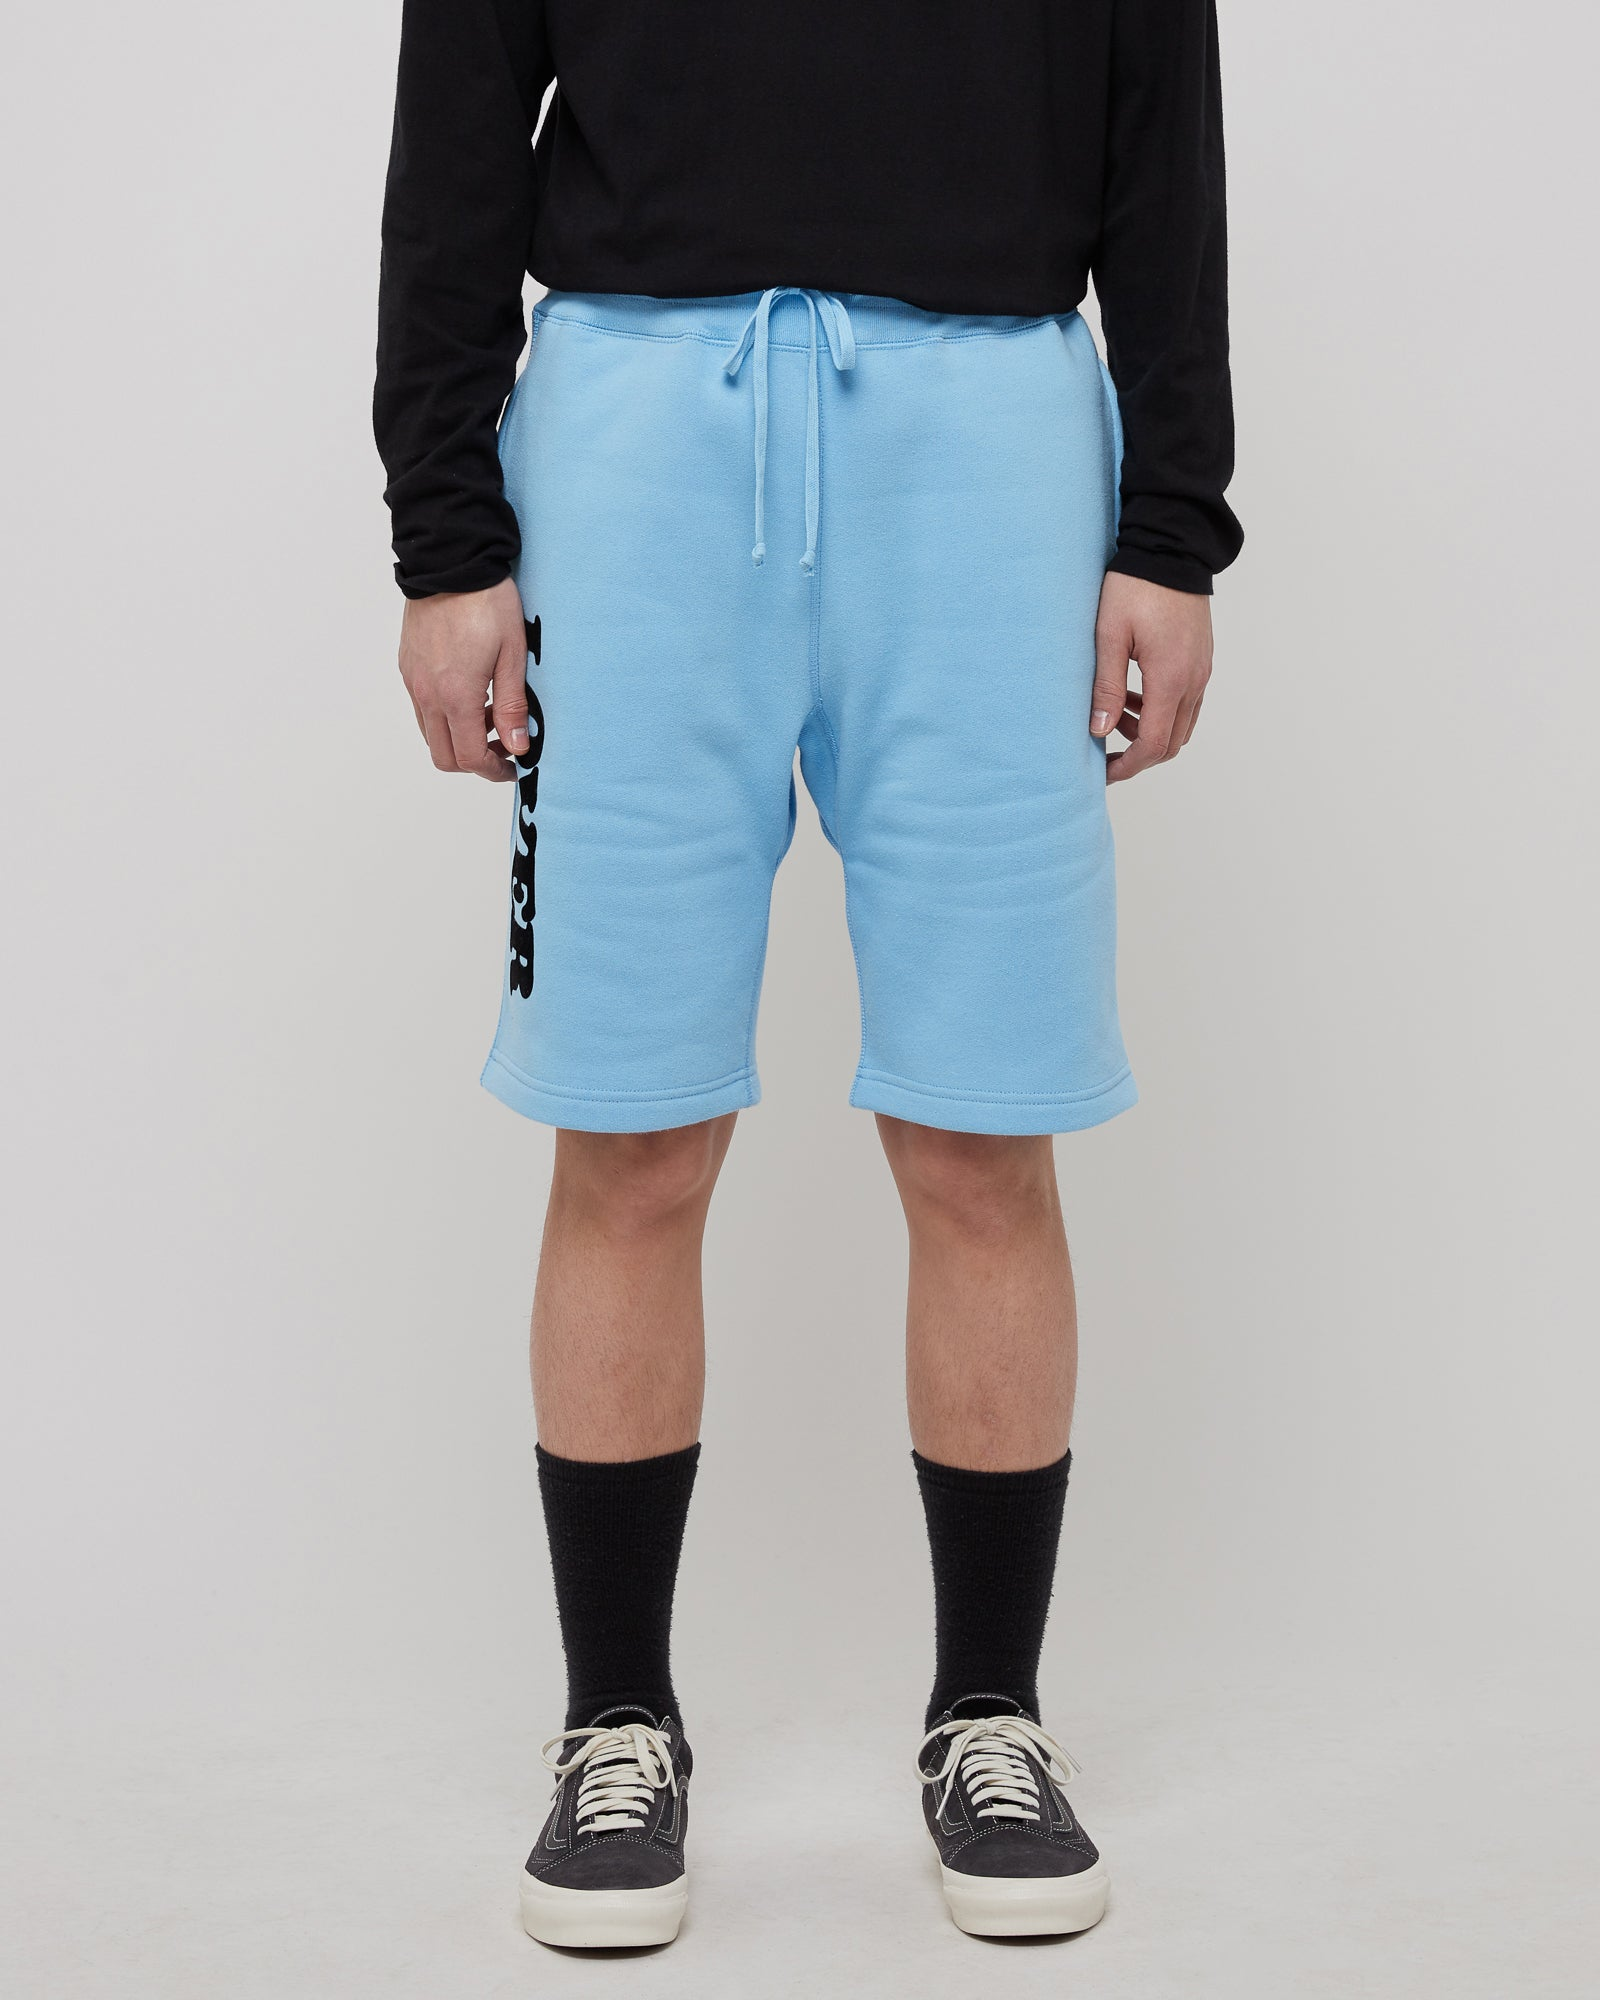 Lover Sweatshorts in Baby Blue & Black